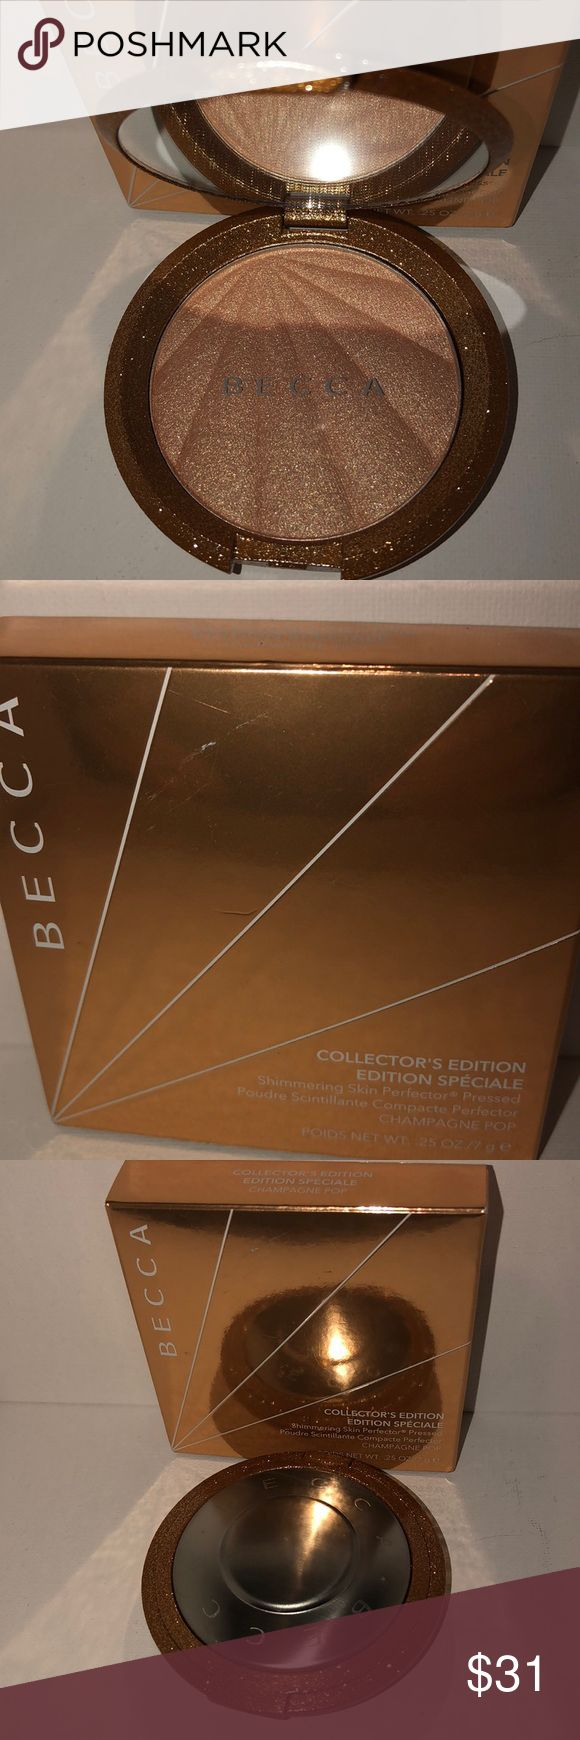 Brand New - Shimmering Skin Perfector Pressed | Champagne ...